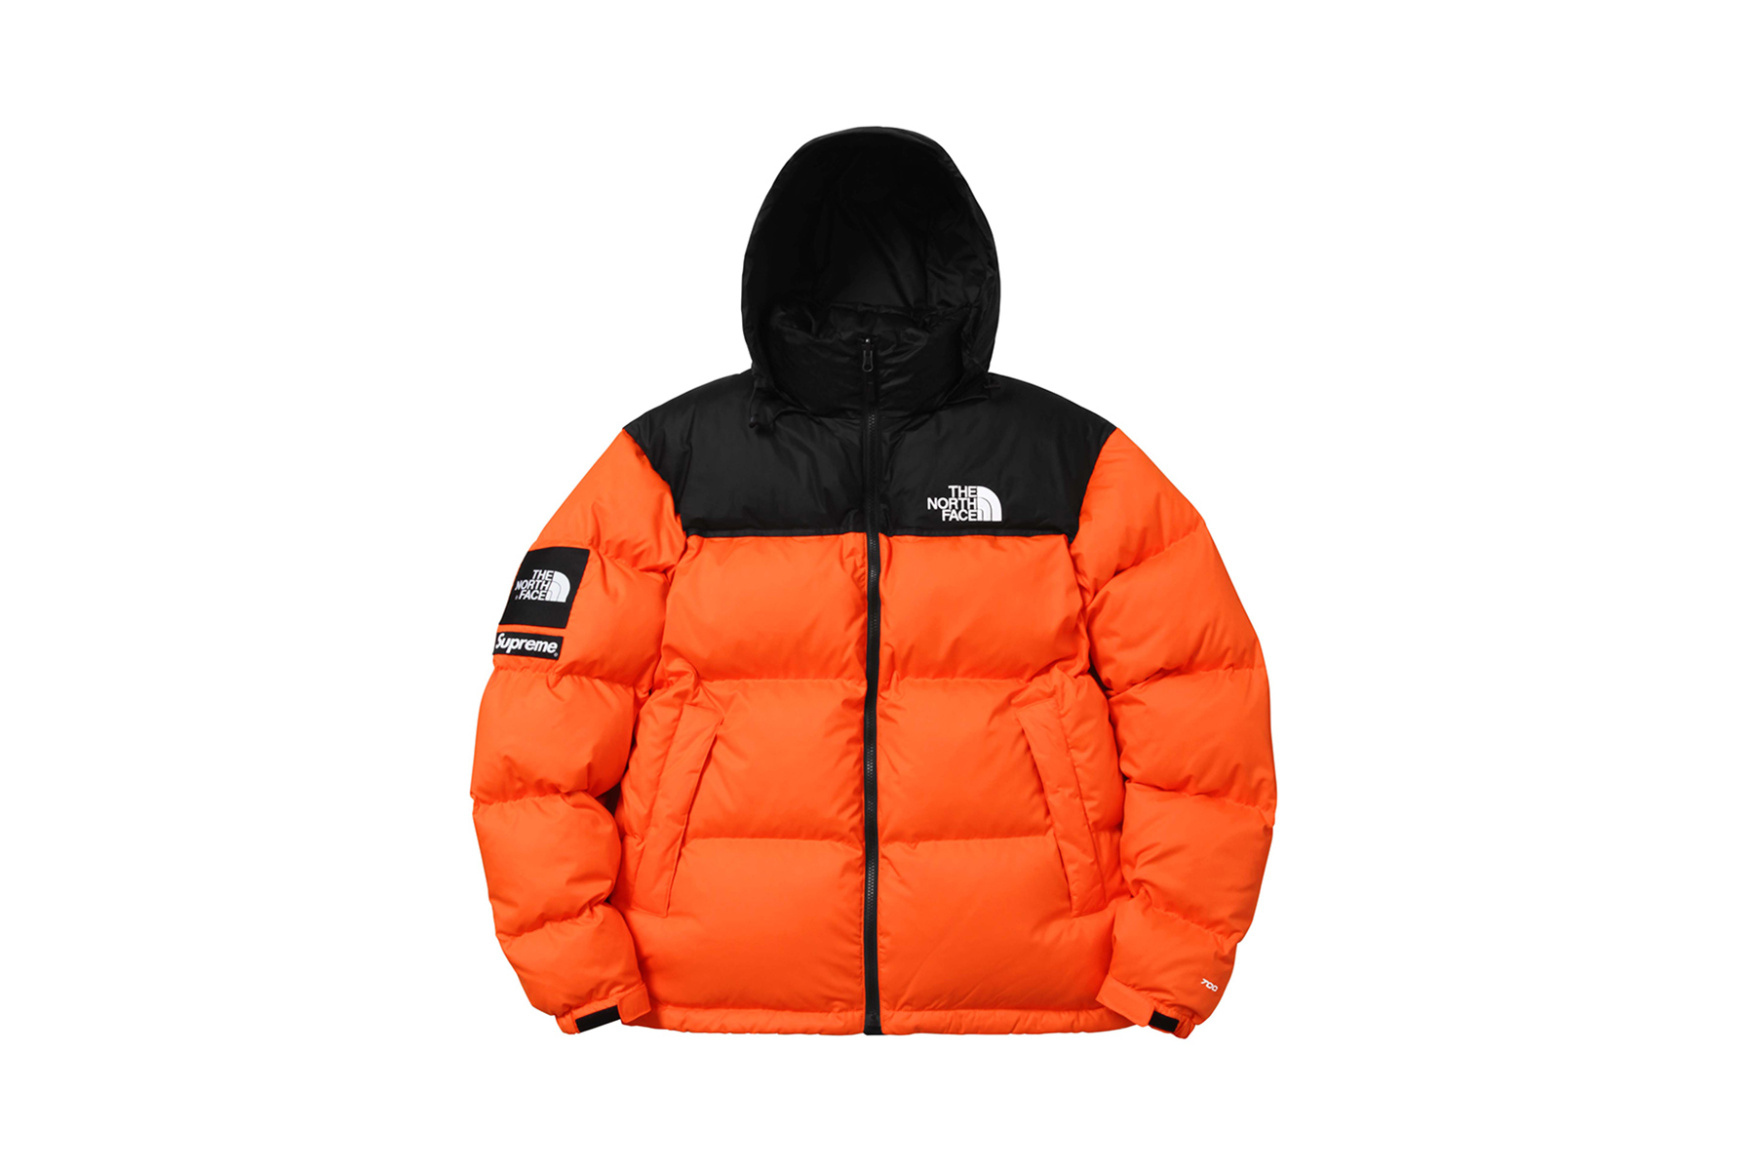 supreme-x-the-north-face-2016-fall-winter-collection-12